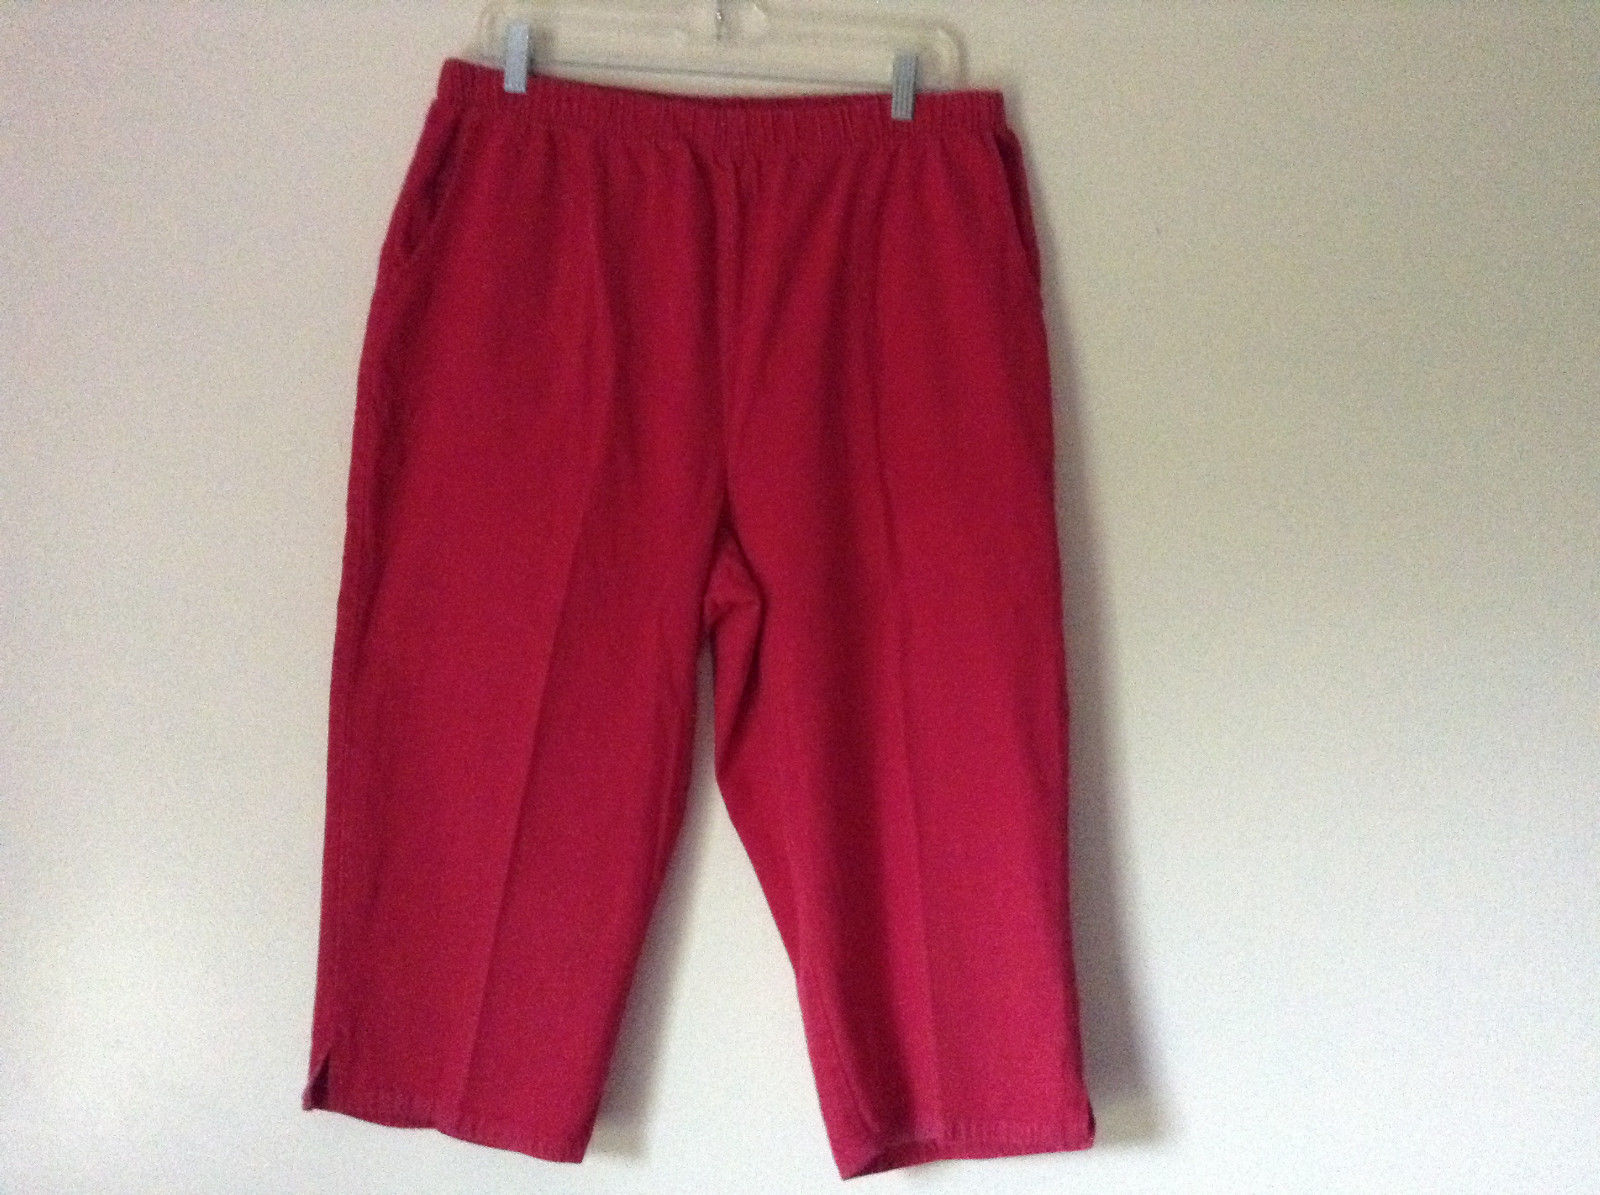 Bright Red Capri Shorts by D and Company Two Pockets Stretchy Size XL